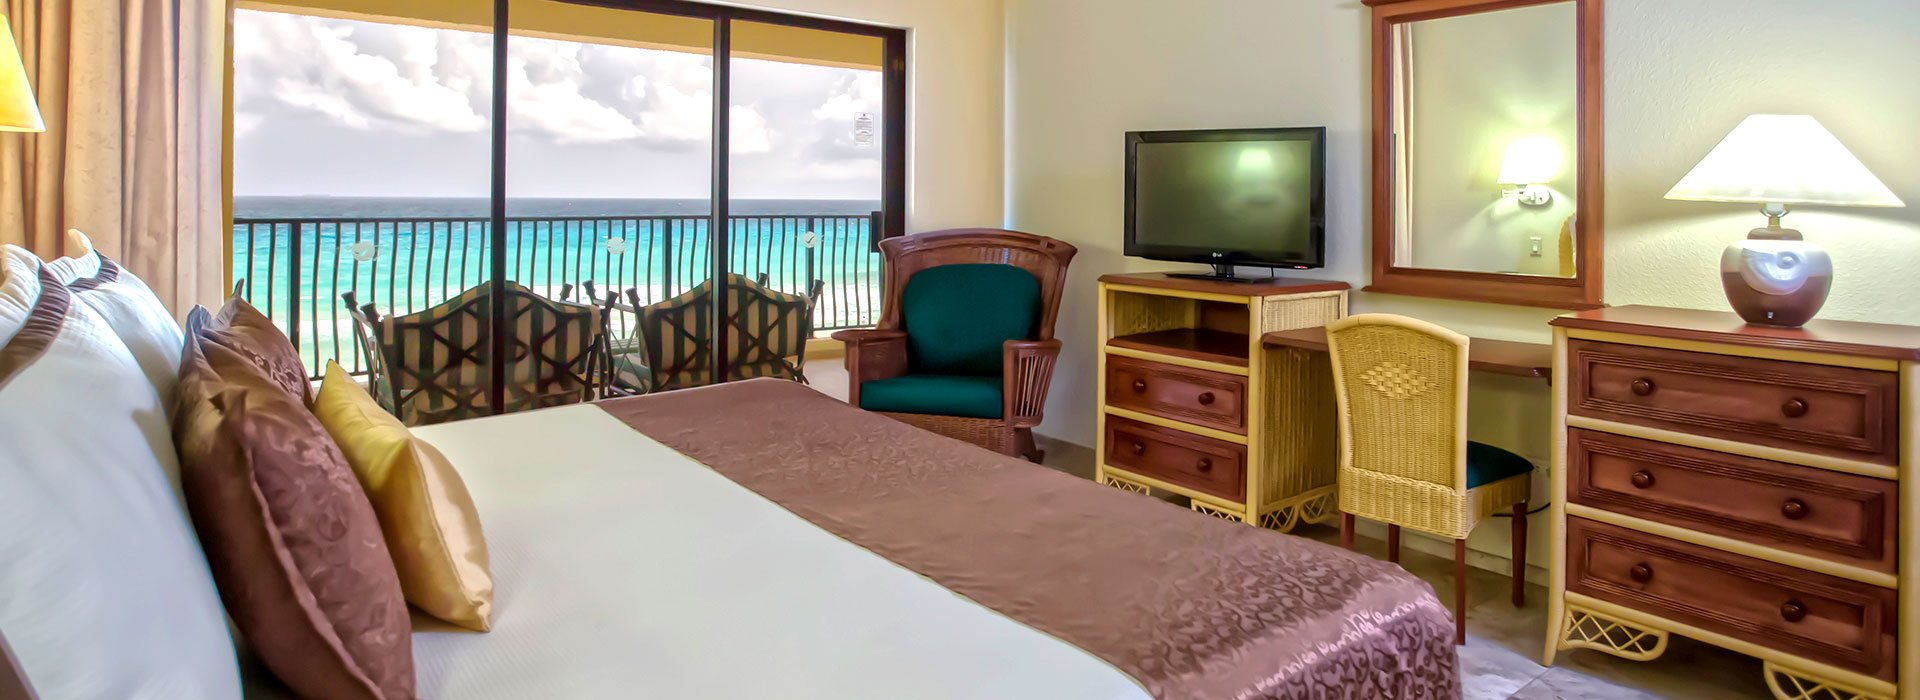 The Royal Sands beachfront suites give you your own private space to enjoy beautiful views